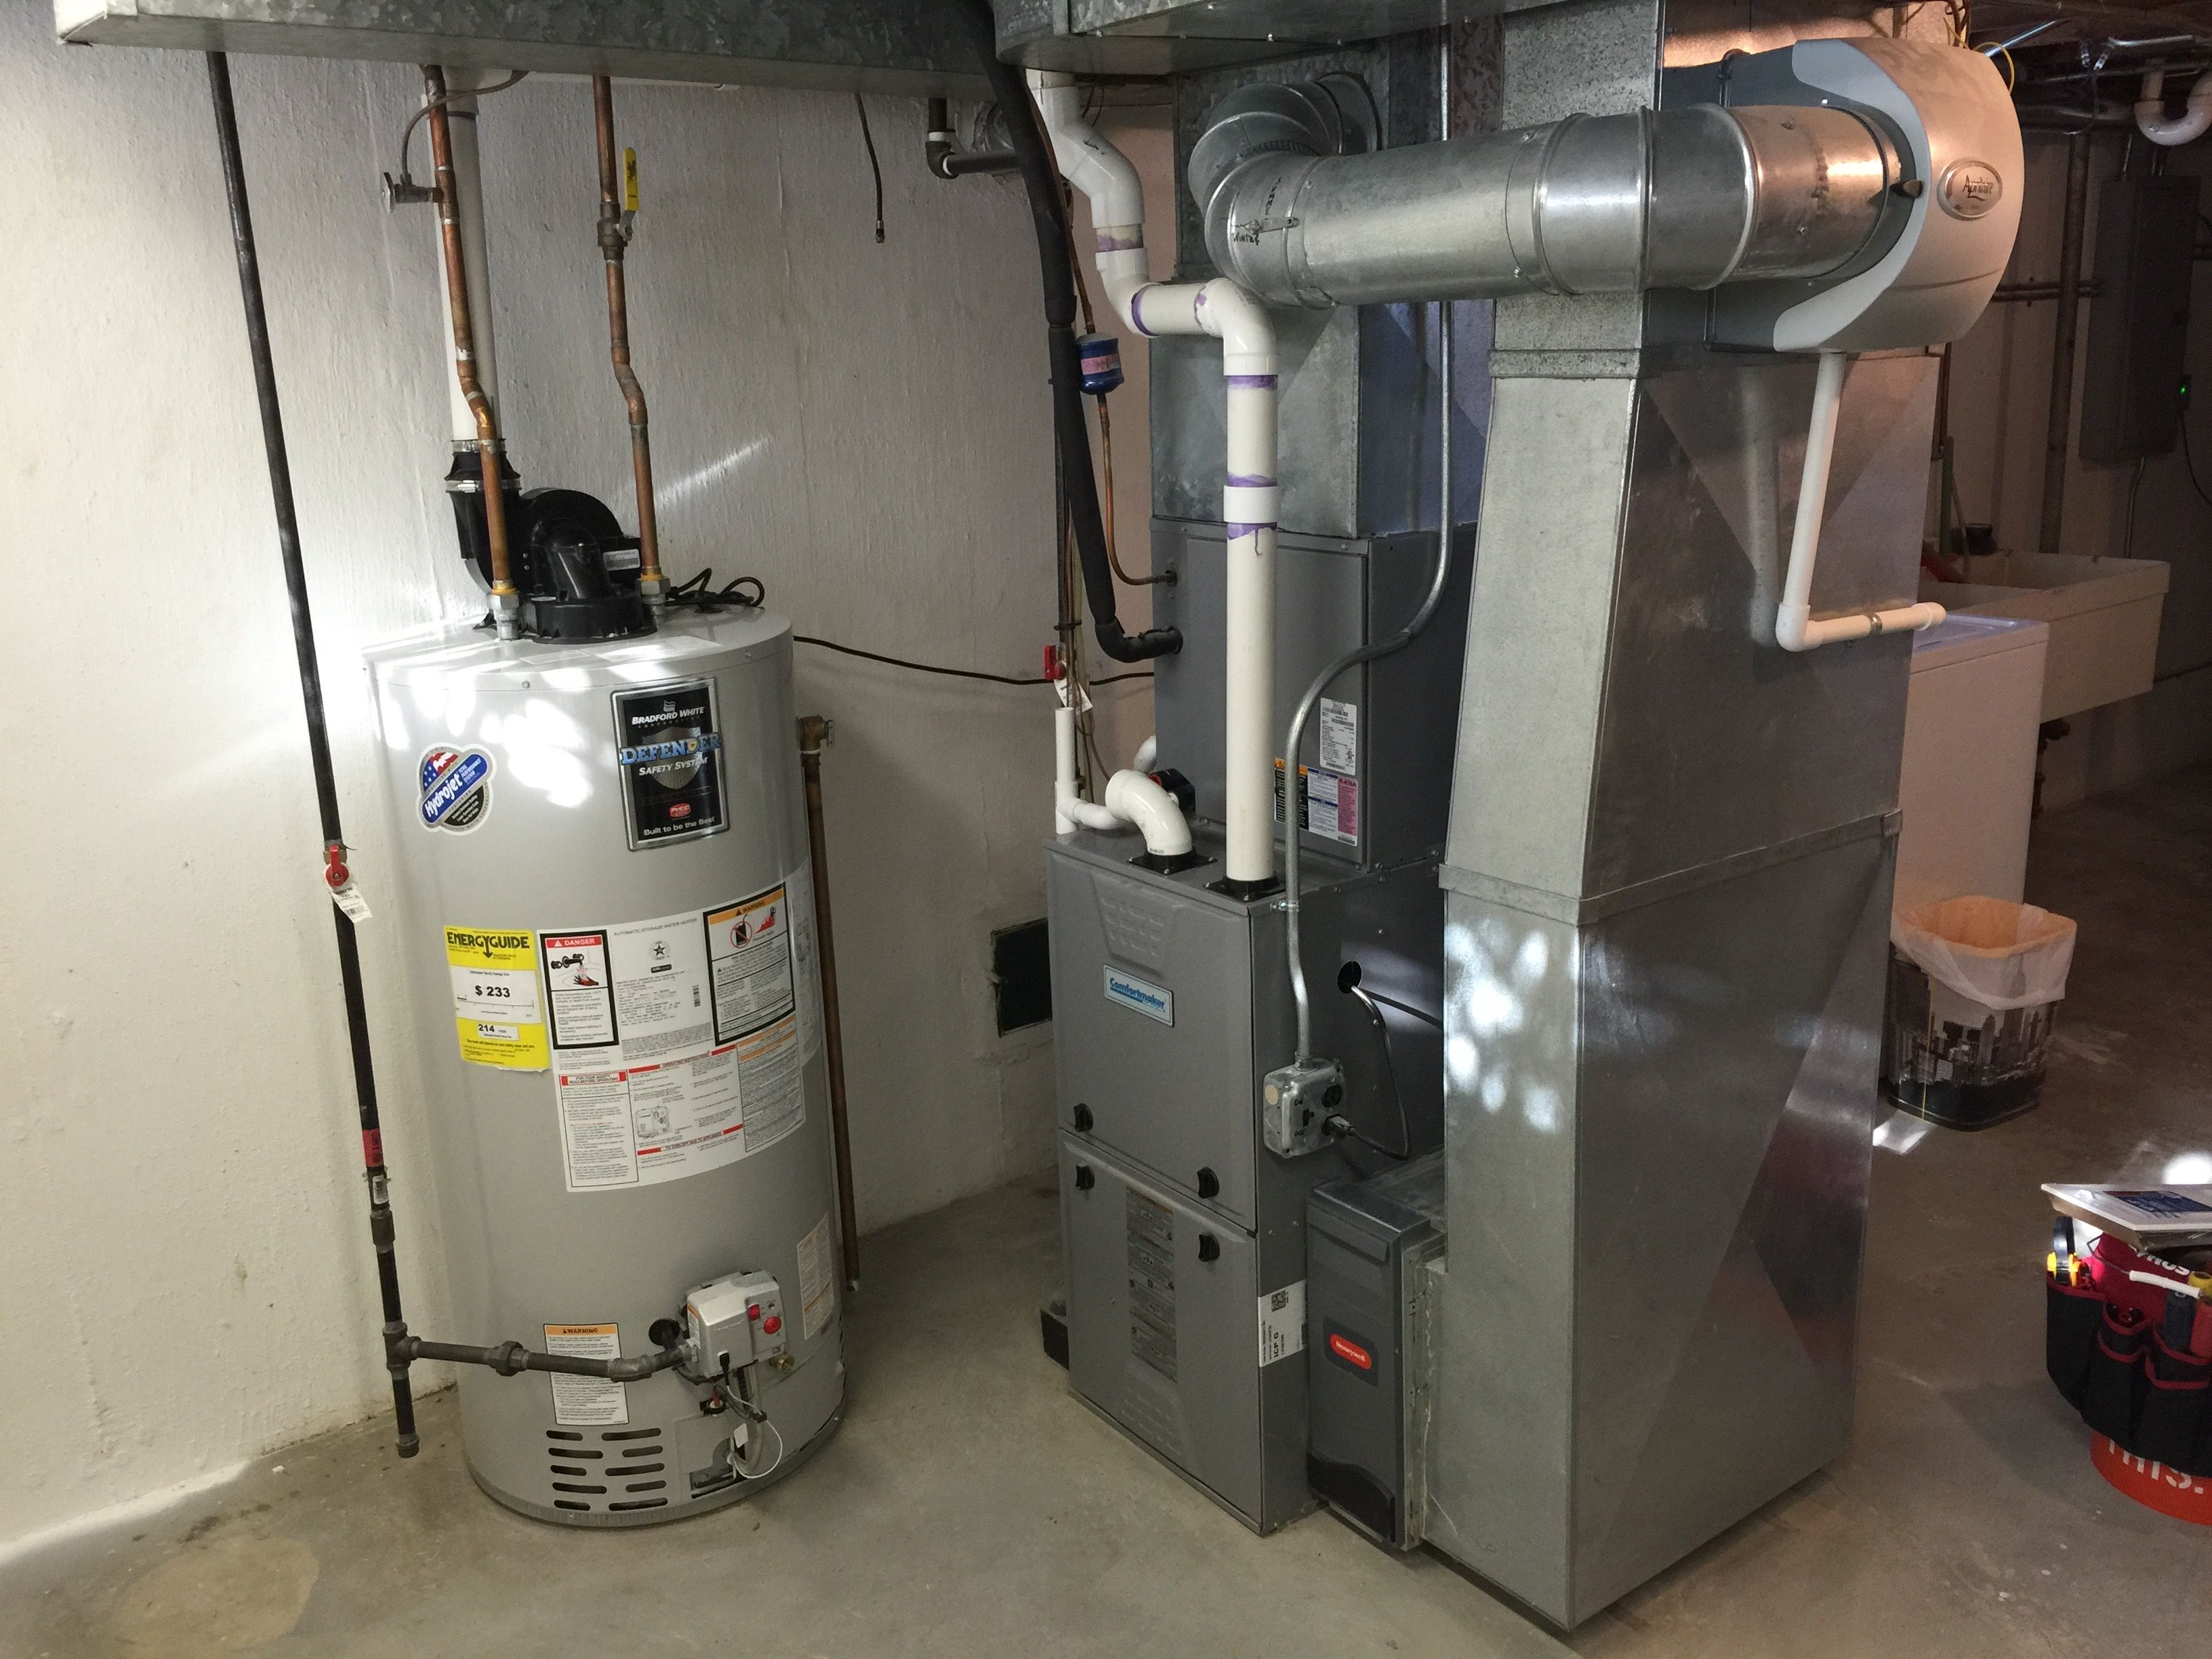 Complete heating and air conditioning system as well as a